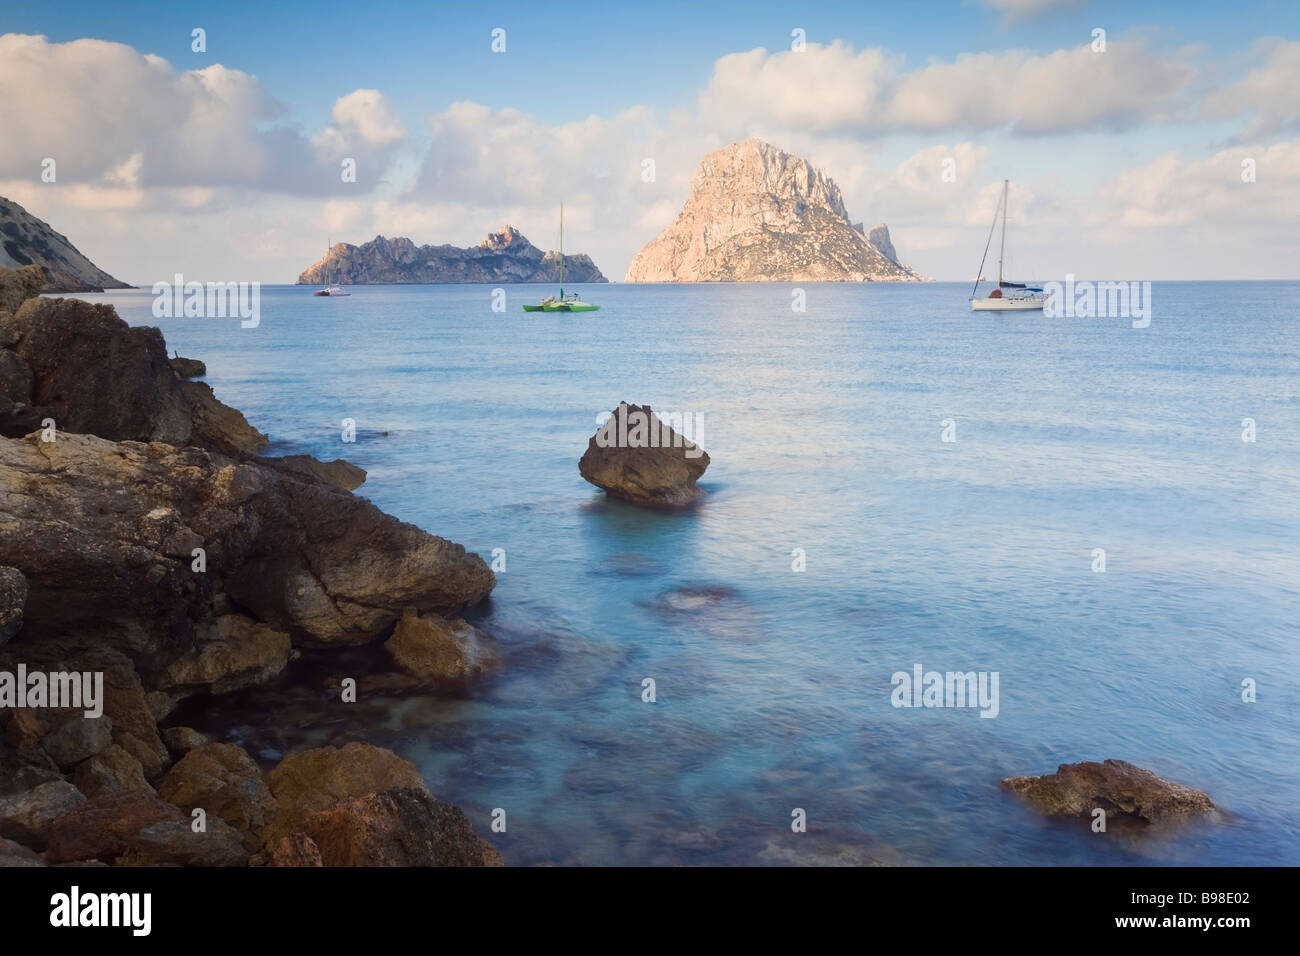 View of the rocky islet of Es Vedra from Cala d Hort near Sant Antoni Ibiza Balearic Islands Spain Mediterranean - Stock Image